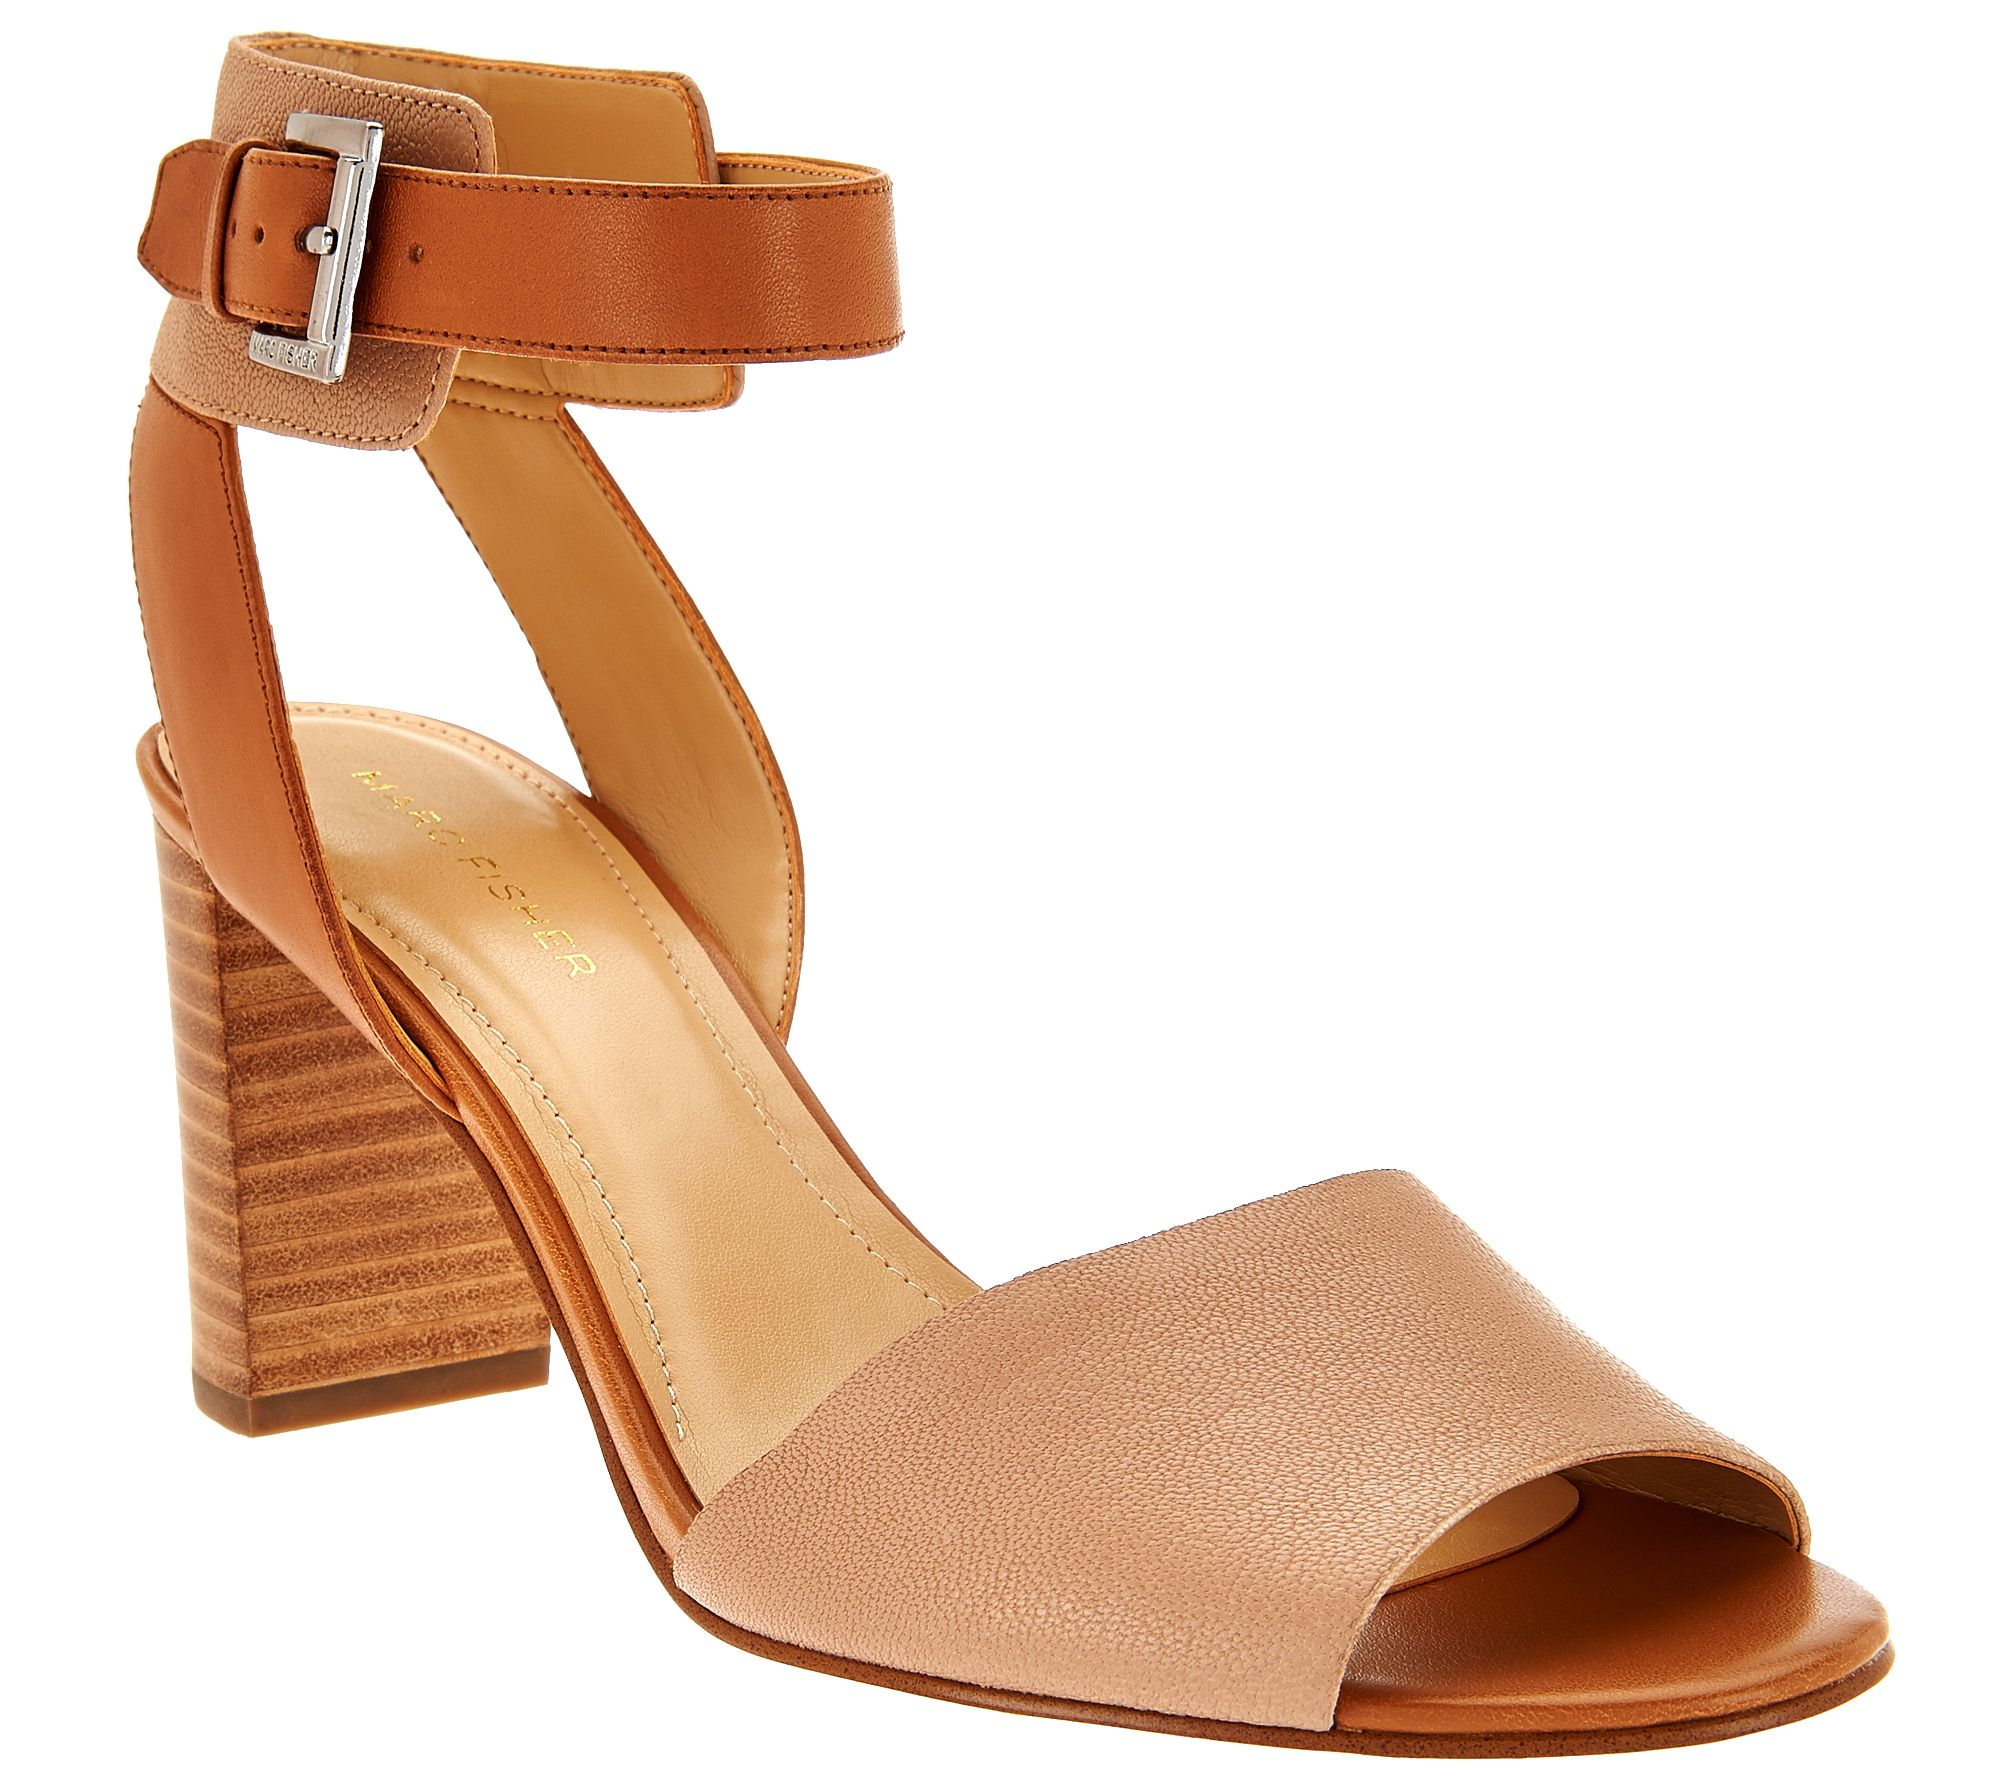 An ankle strap stiletto is a sexy look that is also very practical for walking. This simple addition to many heels adds much greater control and support to a usually loose shoe and also draws attention to your ankles and feet in a subtly alluring manner that is very tasteful and fun.